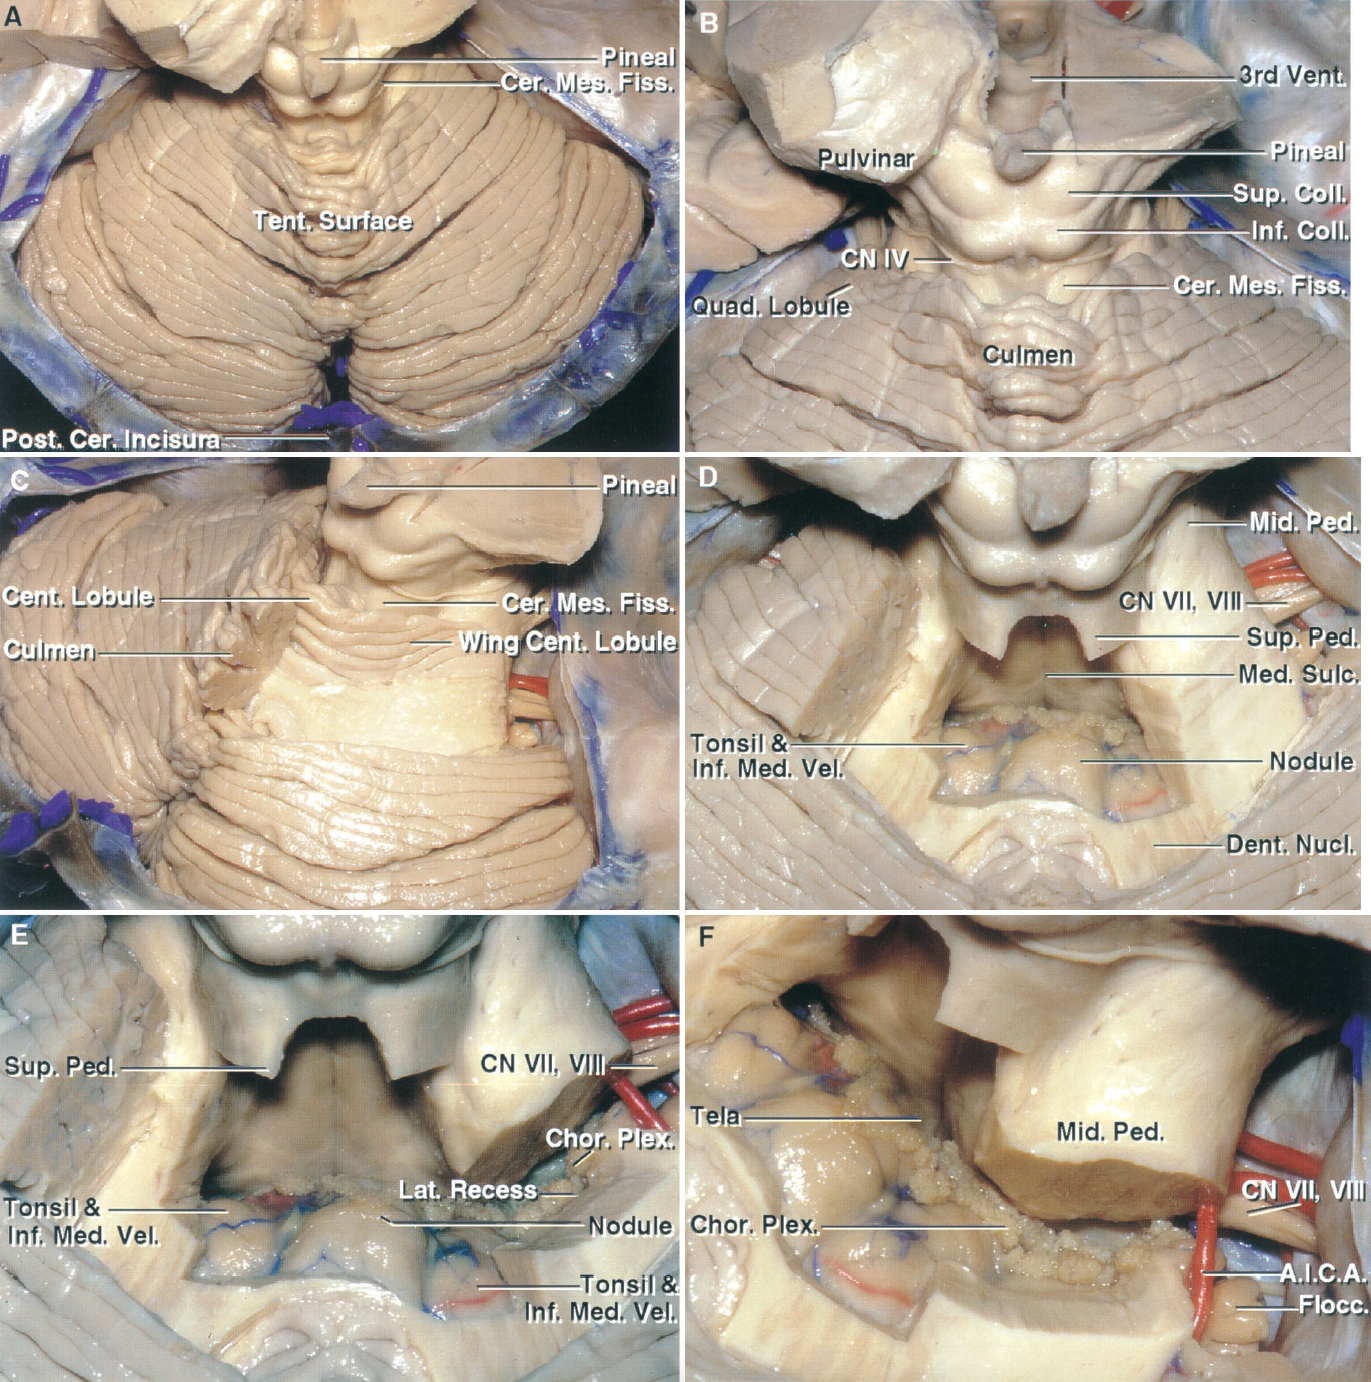 Figure 1.3. Tentorial surface and cerebellomesencephalic fissure. A, the tentorial surface faces the tentorium, which has been removed. The surface slopes downward from the apex to the posterior and lateral margins. The upper part of the tentorial surface surrounds the posterior half of the midbrain and forms the posterior lip of the cerebellomesencephalic fissure. The anterior cerebellar incisura, the notch where the brainstem fits into the anterior part of the tentorial surface, is located anteriorly and the posterior cerebellar incisura, the notch where the falx cerebelli fits into the cerebellum, is located posteriorly. B, enlarged view of the cerebellomesencephalic fissure, which extends downward between the midbrain and the cerebellum. The superficial part of the posterior lip is formed by the culmen in the midline and the quadrangular lobule laterally. The quadrigeminal cistern extends caudally from the pineal into the cerebellomesencephalic fissure. C, the culmen has been removed to expose the central lobule and its wings, which form part of the posterior lip of the cerebellomesencephalic fissure. D, the central lobule and its wings, the lingula, the superior medullary velum, and medial part of the superior cerebellar peduncles have been removed to expose the fourth ventricle. The lower half of the roof is formed in the midline by the nodule and laterally by the inferior medullary velum, which passes laterally above, but is separated from the rostral pole of the tonsils by the cerebellomedullary fissure. E, some of the middle peduncle has been removed to expose the choroid plexus extending through the lateral recess into the cerebellopontine angle below the facial and vestibulocochlear nerves. F, oblique view of the lower half of the roof formed by the inferior medullary velum and the tela choroidea in which the choroid plexus arises. The inferior medullary velum arises on the surface of the nodule and extends laterally to blend into the flocculus and, with 